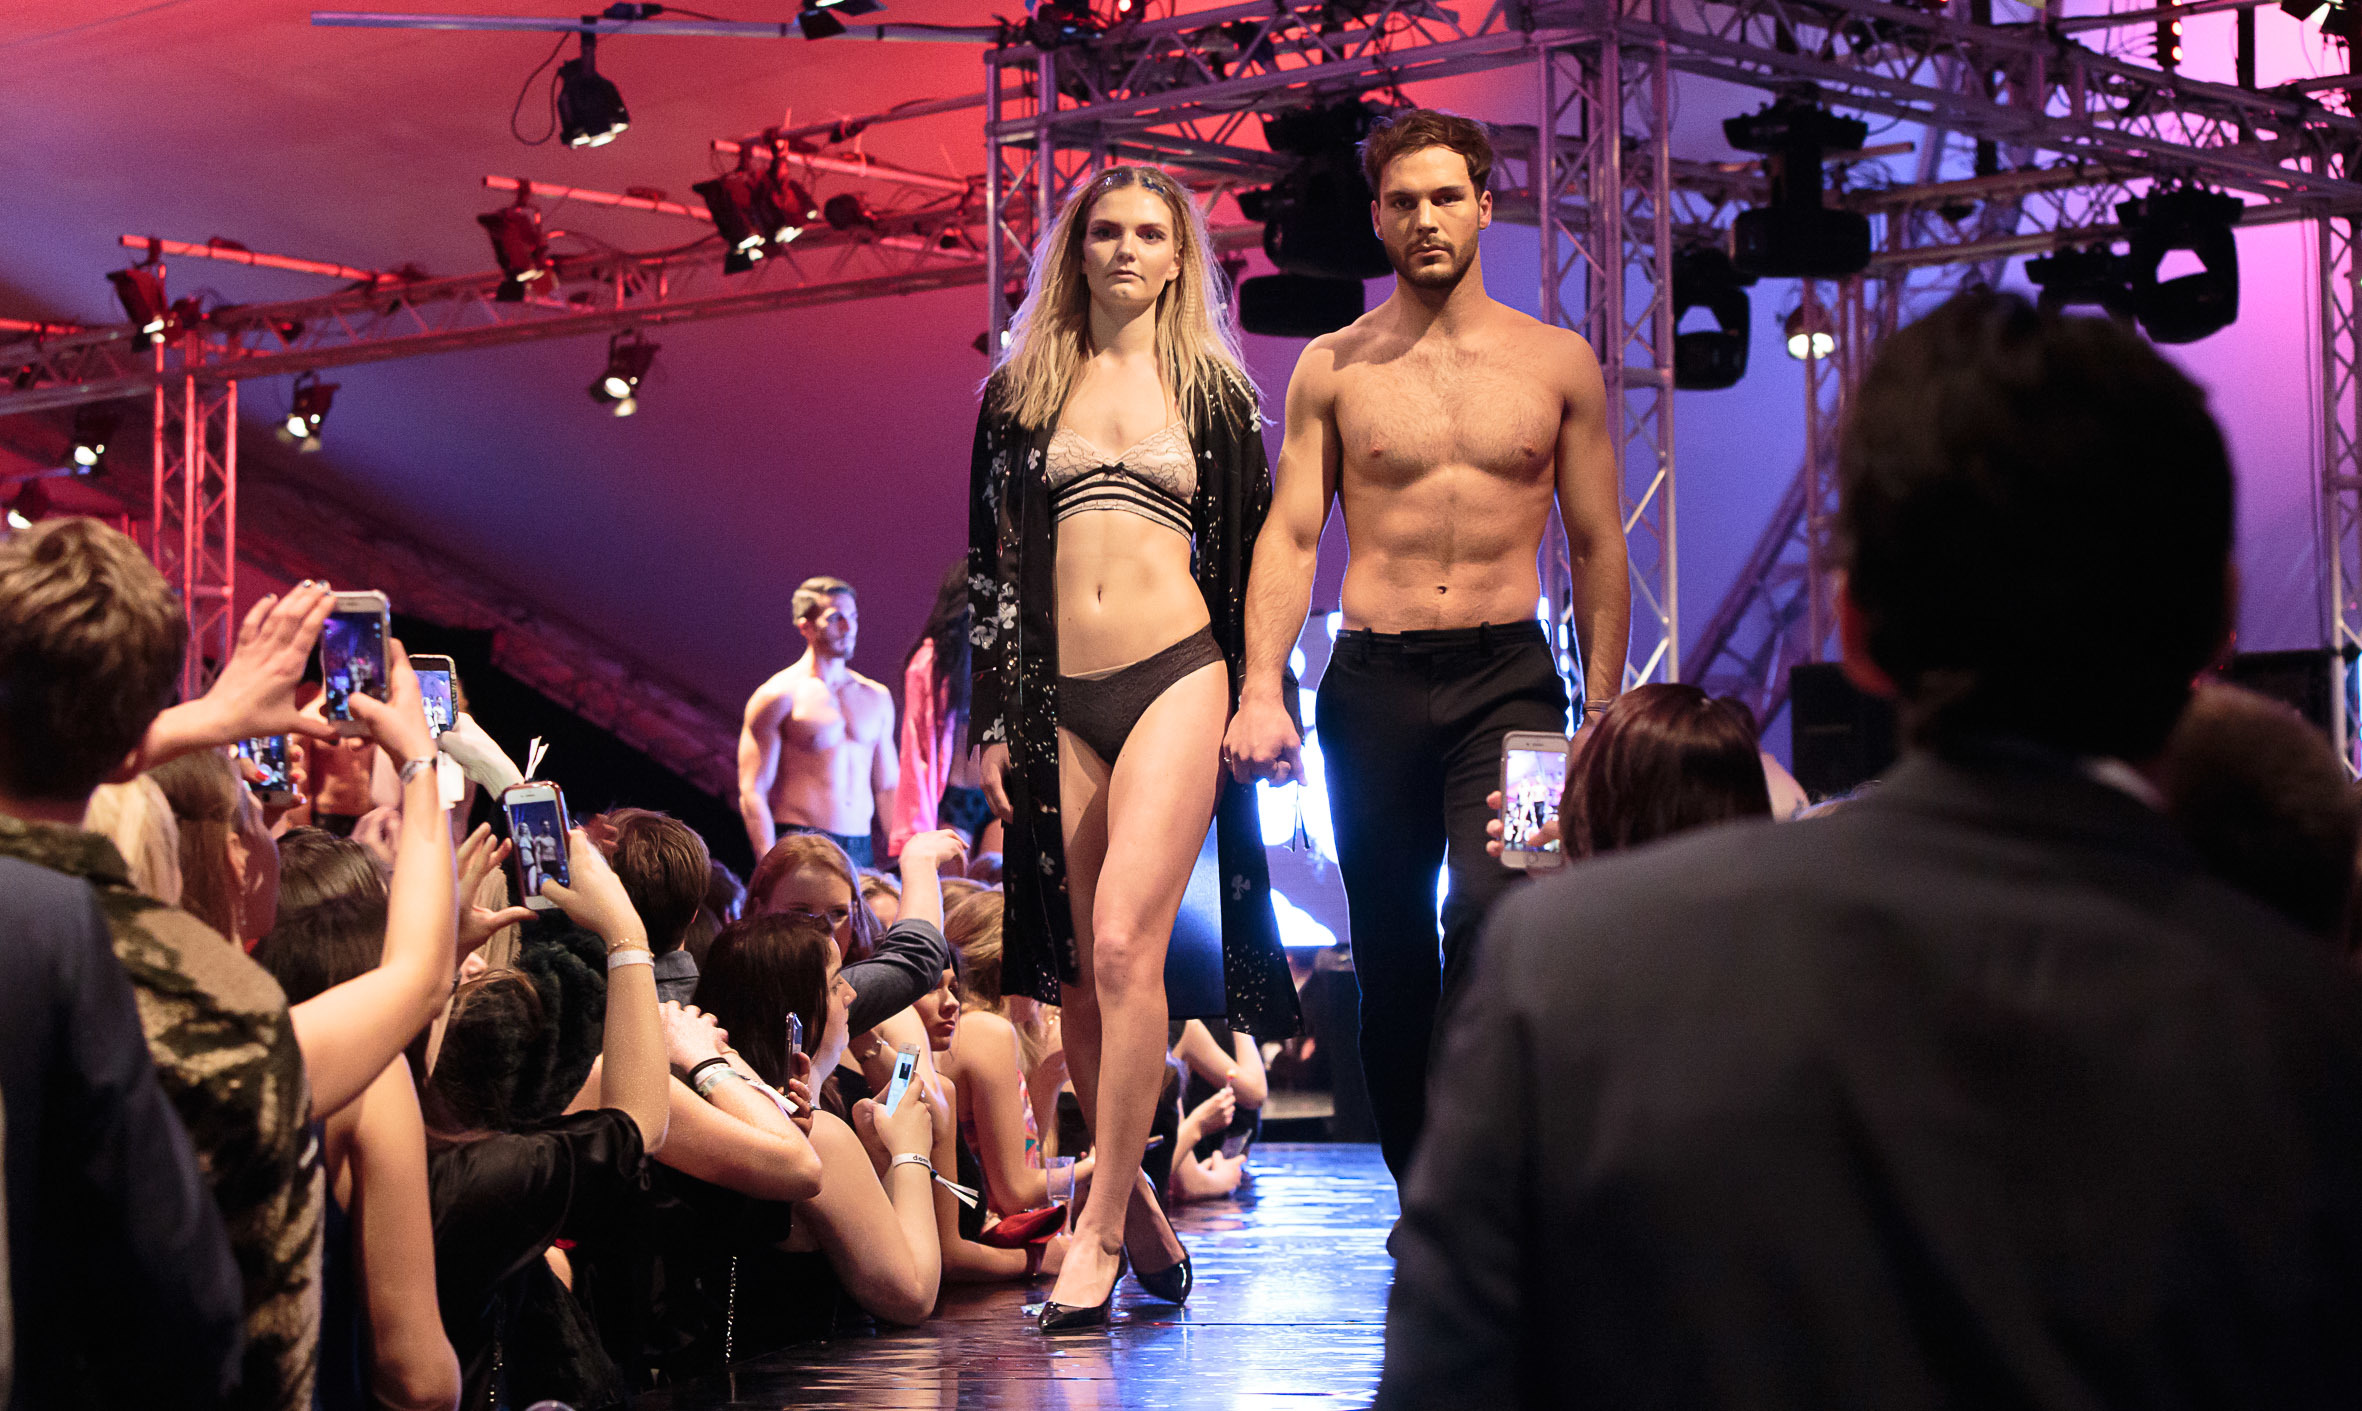 Models in the 2018 Dont Walk fashion show.